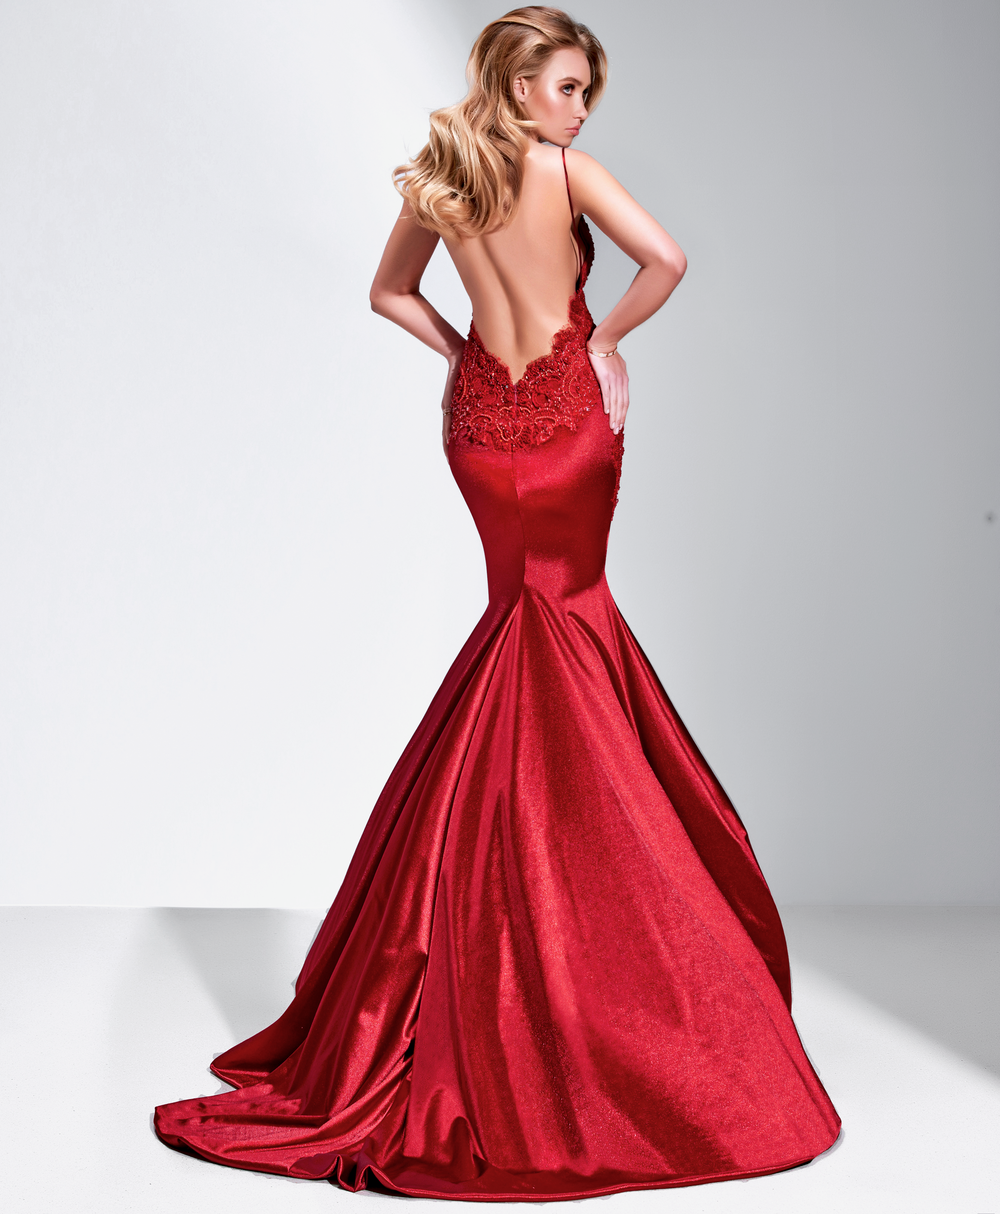 Qipao Date Detail See Social Tab Below For More Images Also Available In Stretch Crepe Please See The Crepe Qipa In 2020 Affordable Prom Dresses Qipao Gown Qipao [ 1214 x 1000 Pixel ]